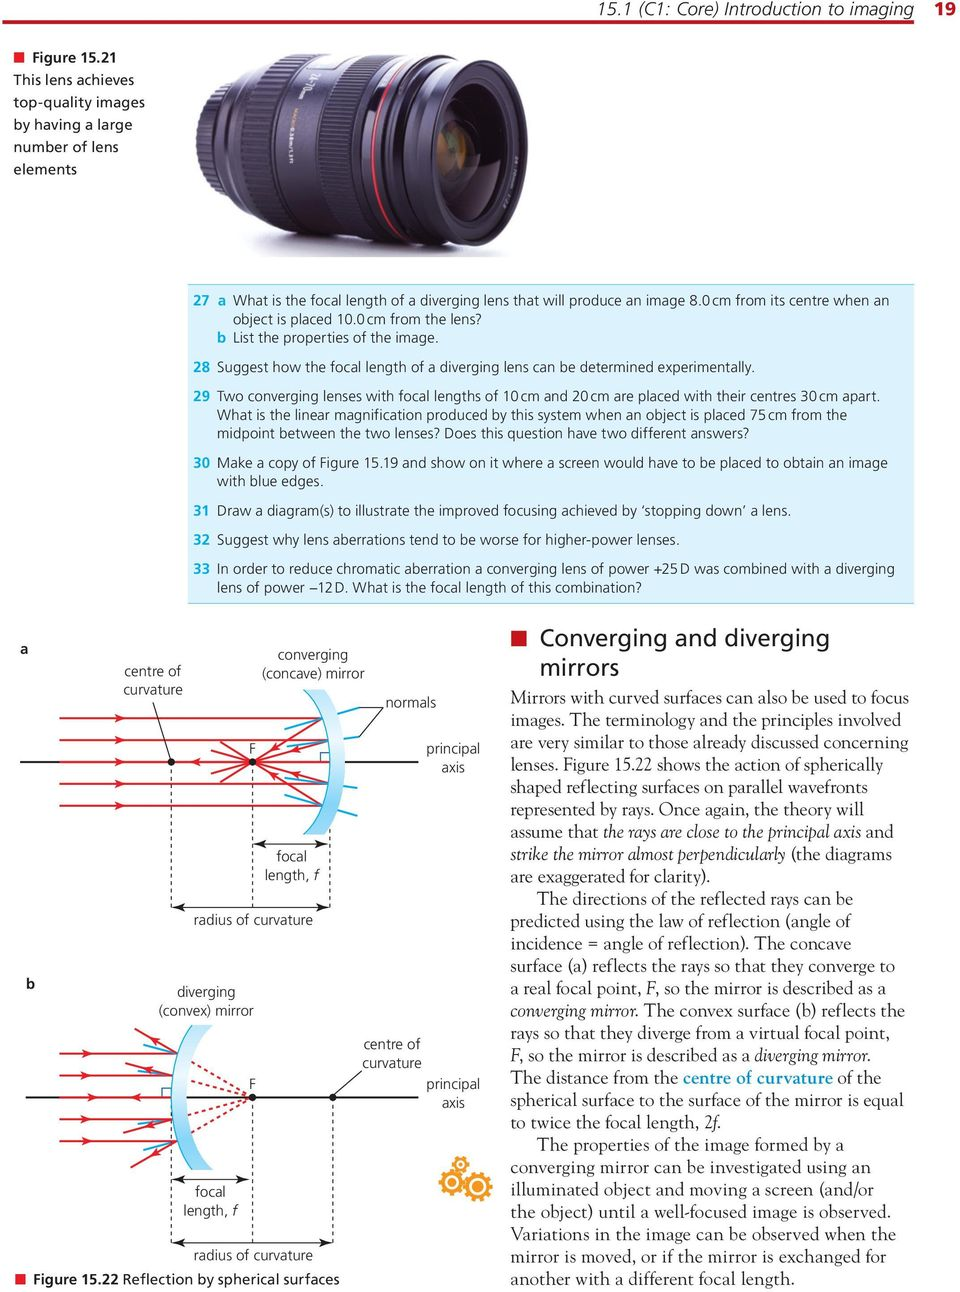 0 cm from its centre when an object is placed 10.0 cm from the lens? b List the properties of the image. 28 Suggest how the focal length of a diverging lens can be determined experimentally.